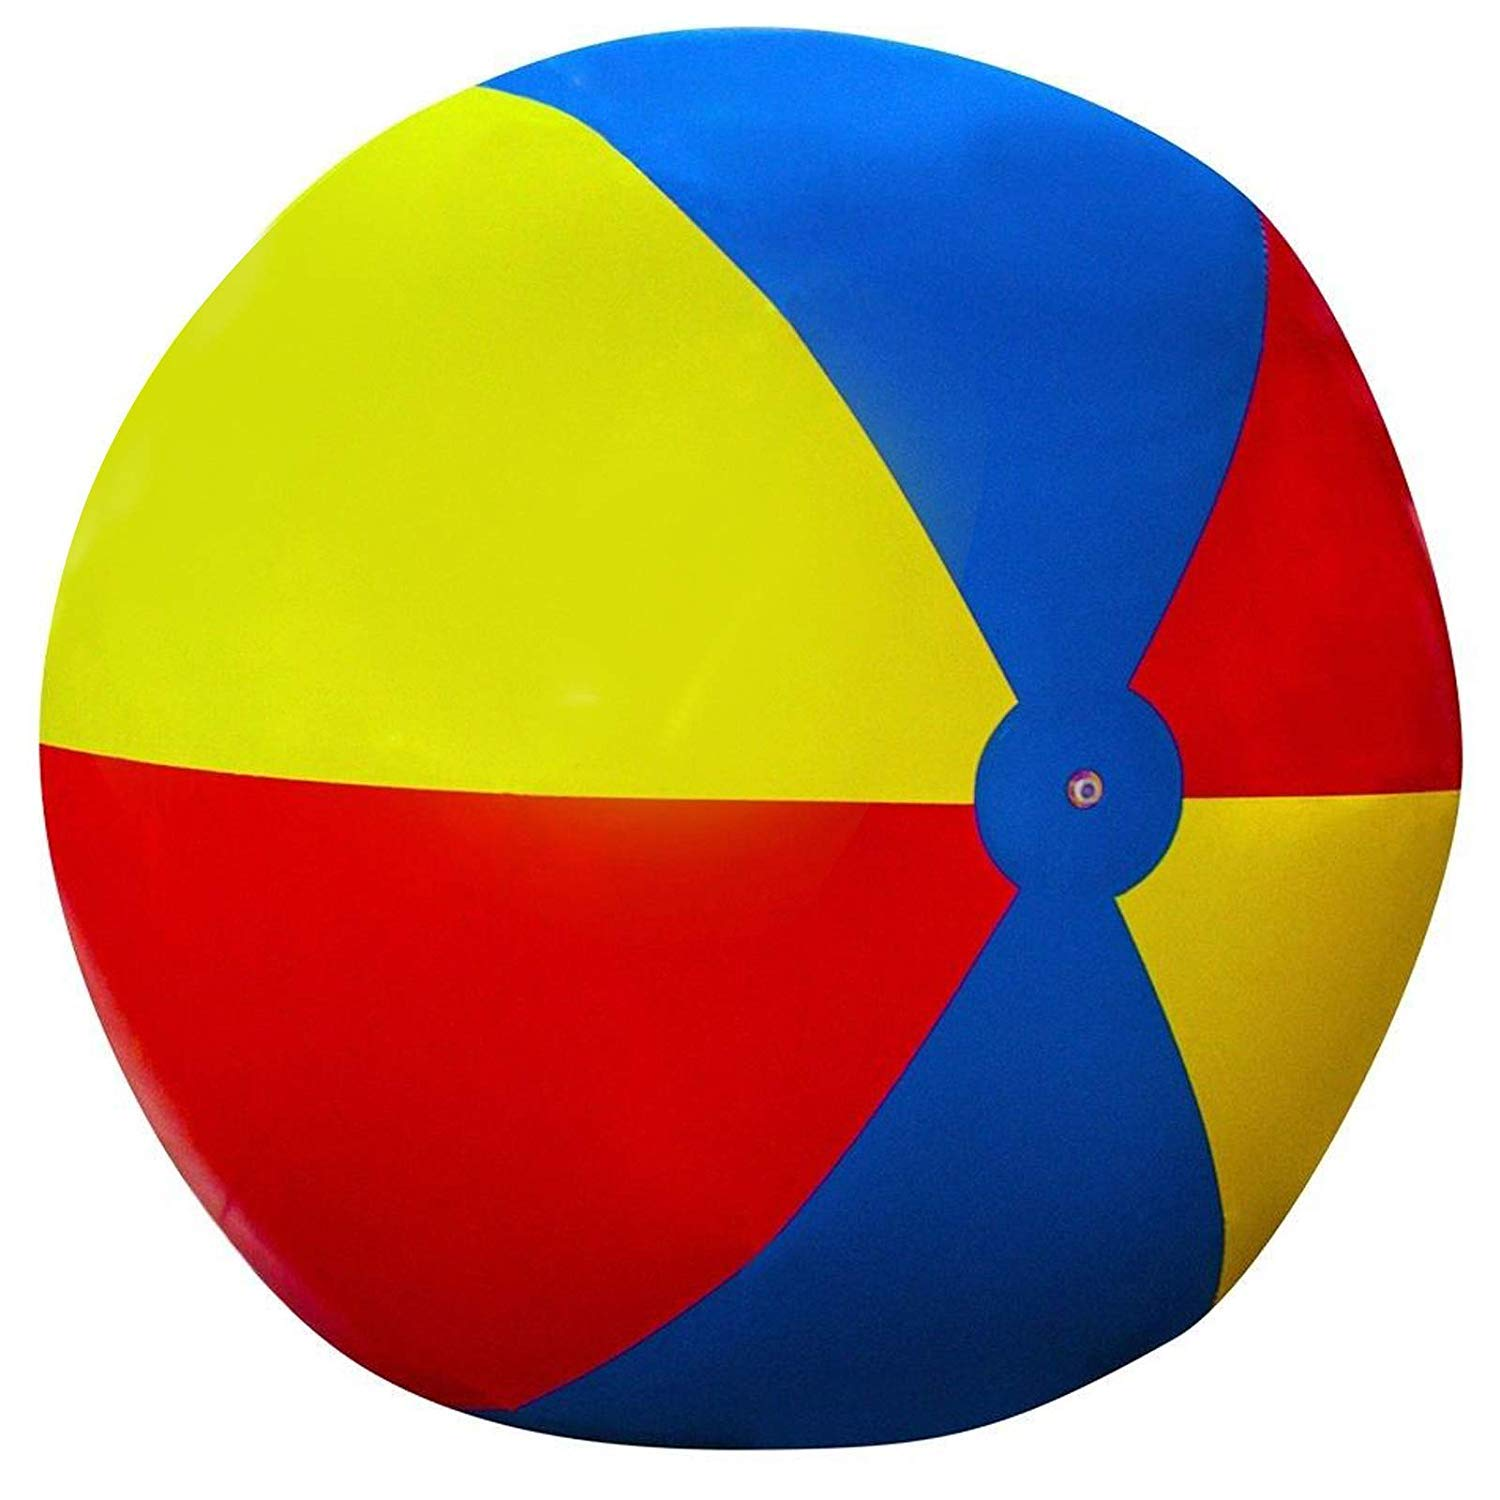 Macticy Giant Beach Ball 6 8 ft Diameter Extra Large Inflatable Beach Ball Pool Toy Jumbo Beach Ball (8' Beach Ball) by Macticy